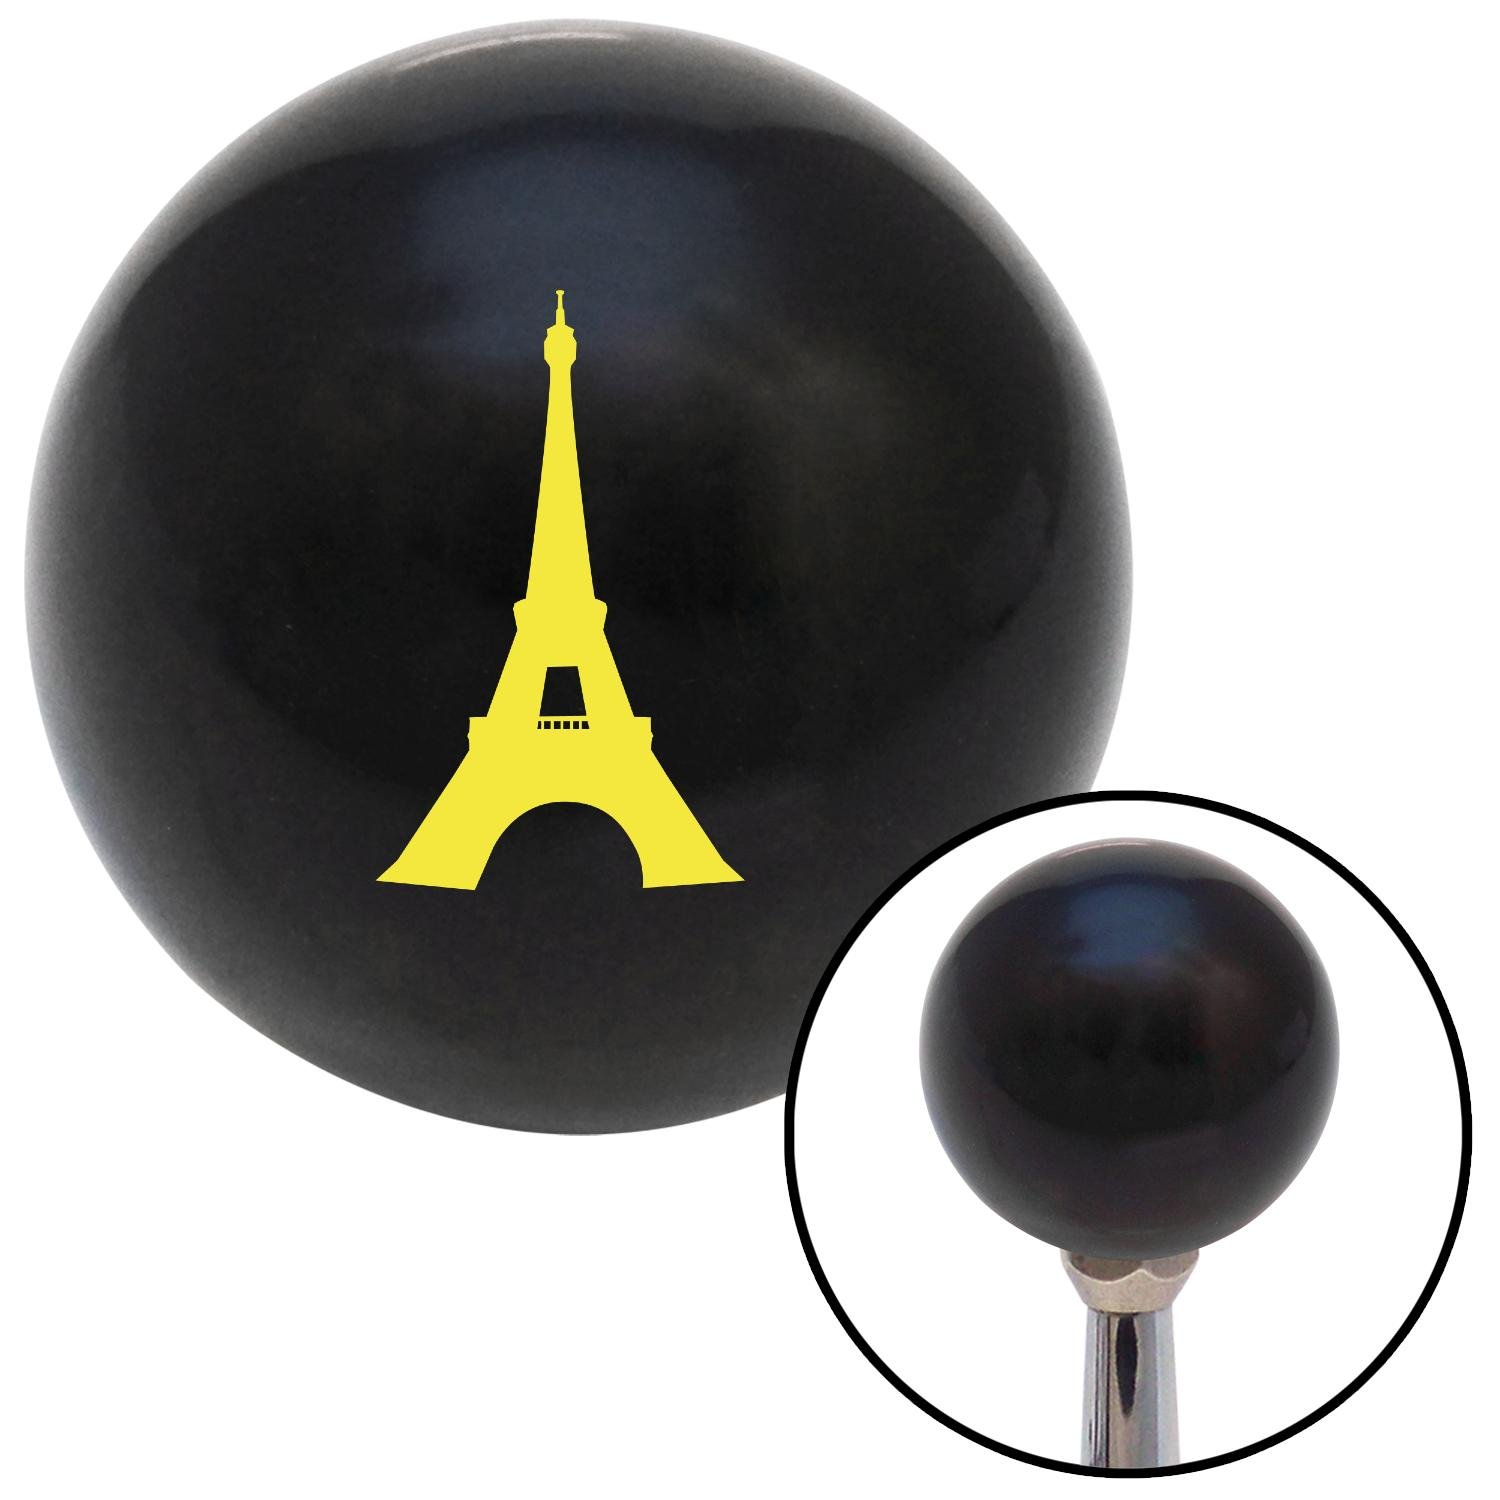 American Shifter 103552 Black Shift Knob with M16 x 1.5 Insert Yellow The Eiffel Tower